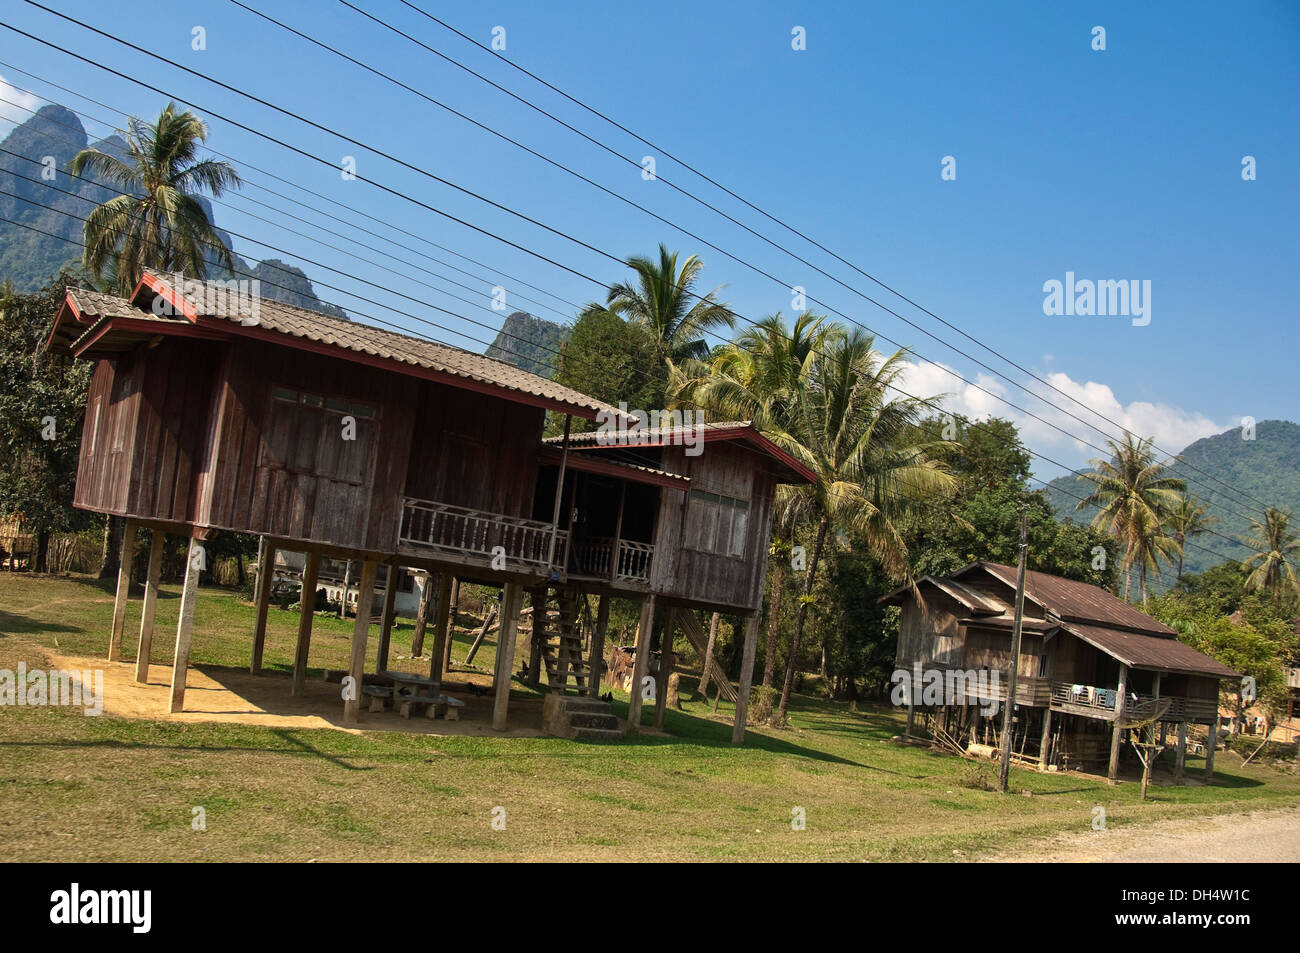 Horizontal view of traditional stilted wooden houses along a countryside street in Laos. Stock Photo